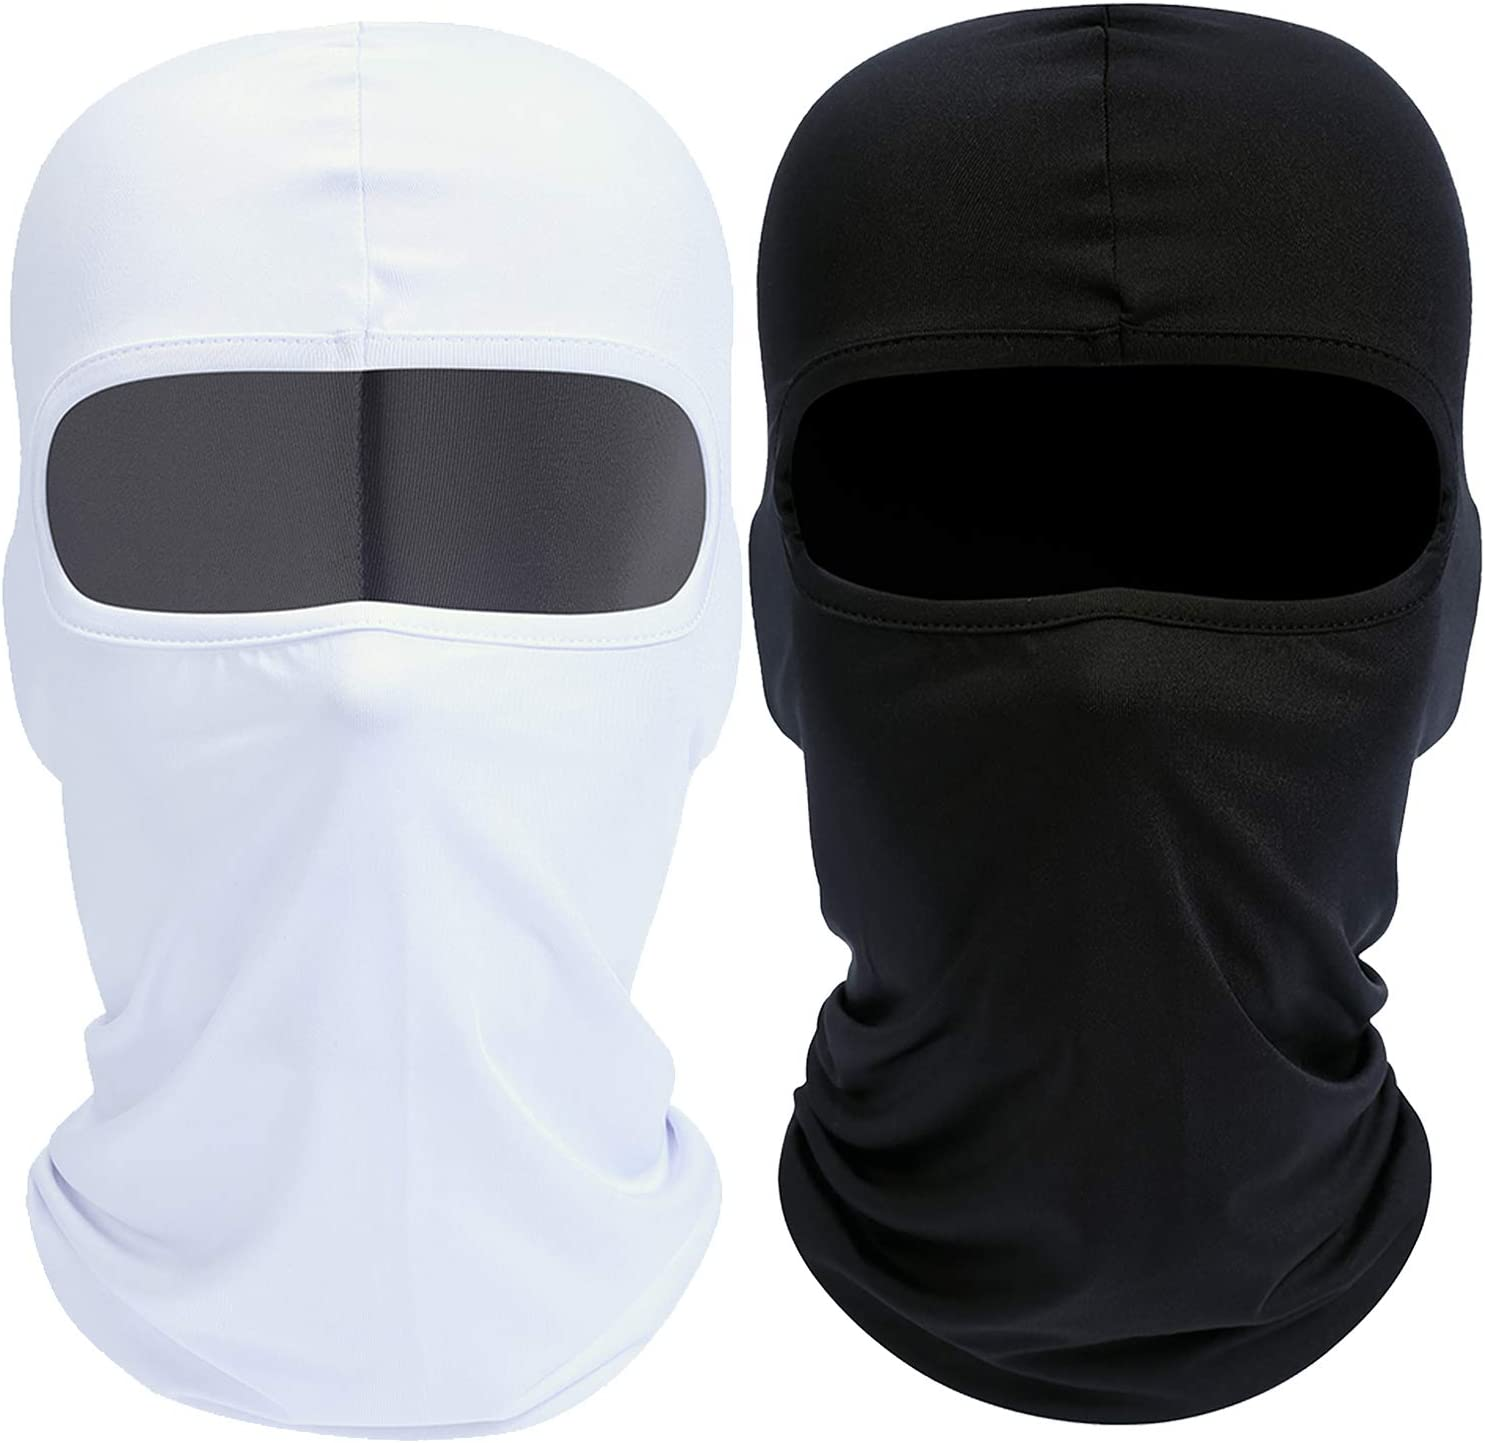 Your Choice Balaclava Ski Face Mask Cold Weather, Set of 2 Black and White